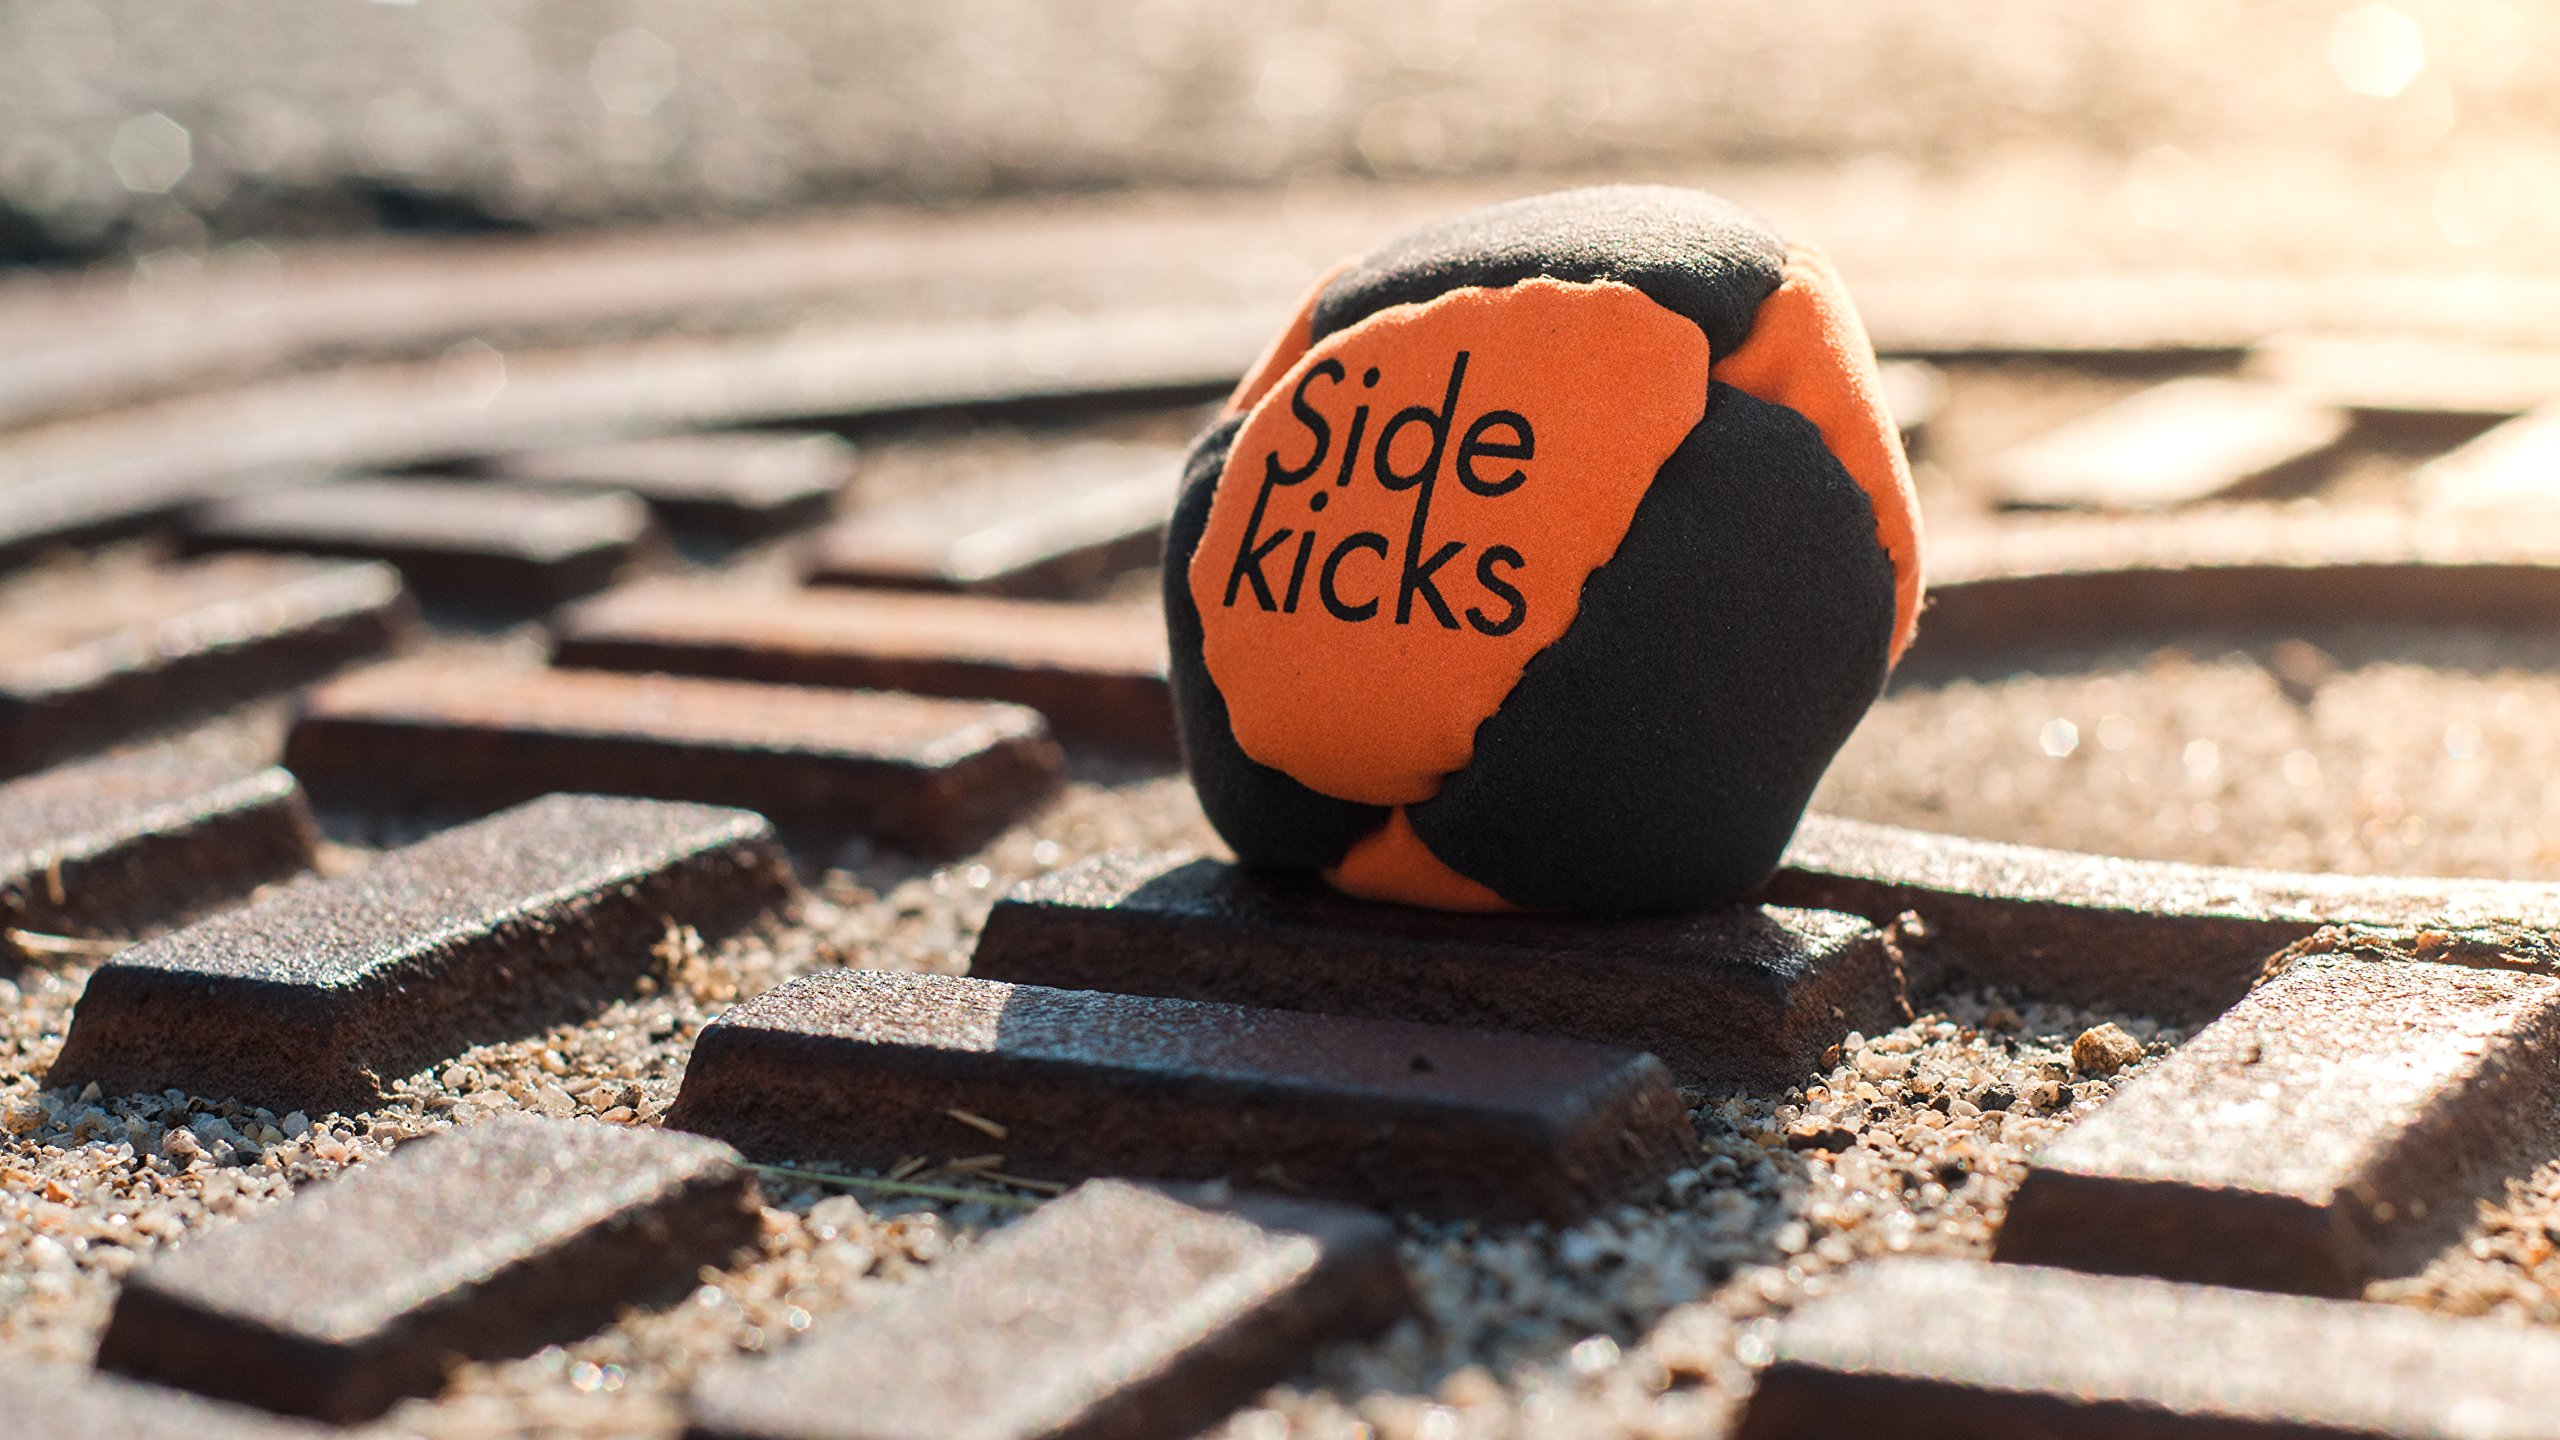 Sidekicks Hacky Sack - Classic Sand Filled Footbag | Best for Dirtbag Practice, Juggling Practice Hand Stitched Synthetic Suede Sand Hacky Sack Dirt Bag (Green)